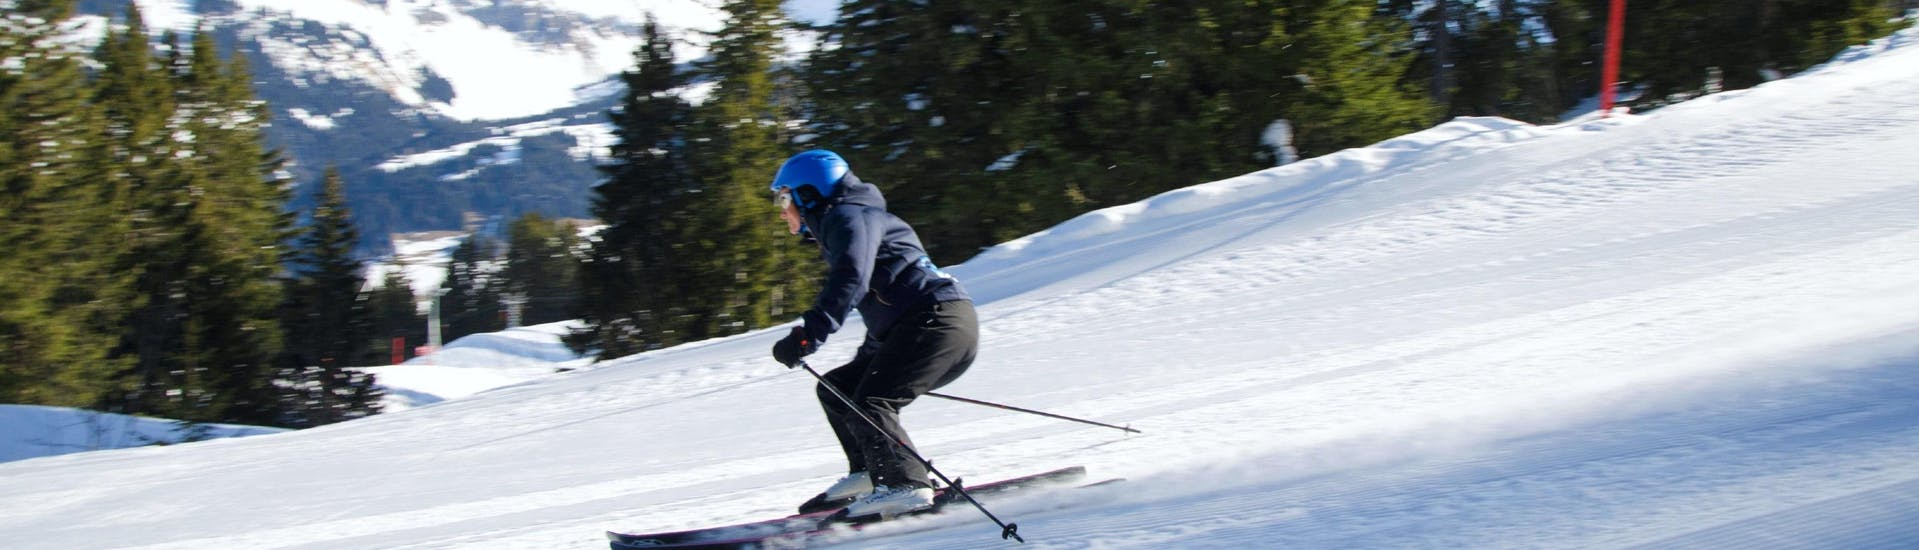 A skier is sliding down the slope during the Private Ski Lessons for Adults of All Levels with the ski school Diablerets Pure Trace.